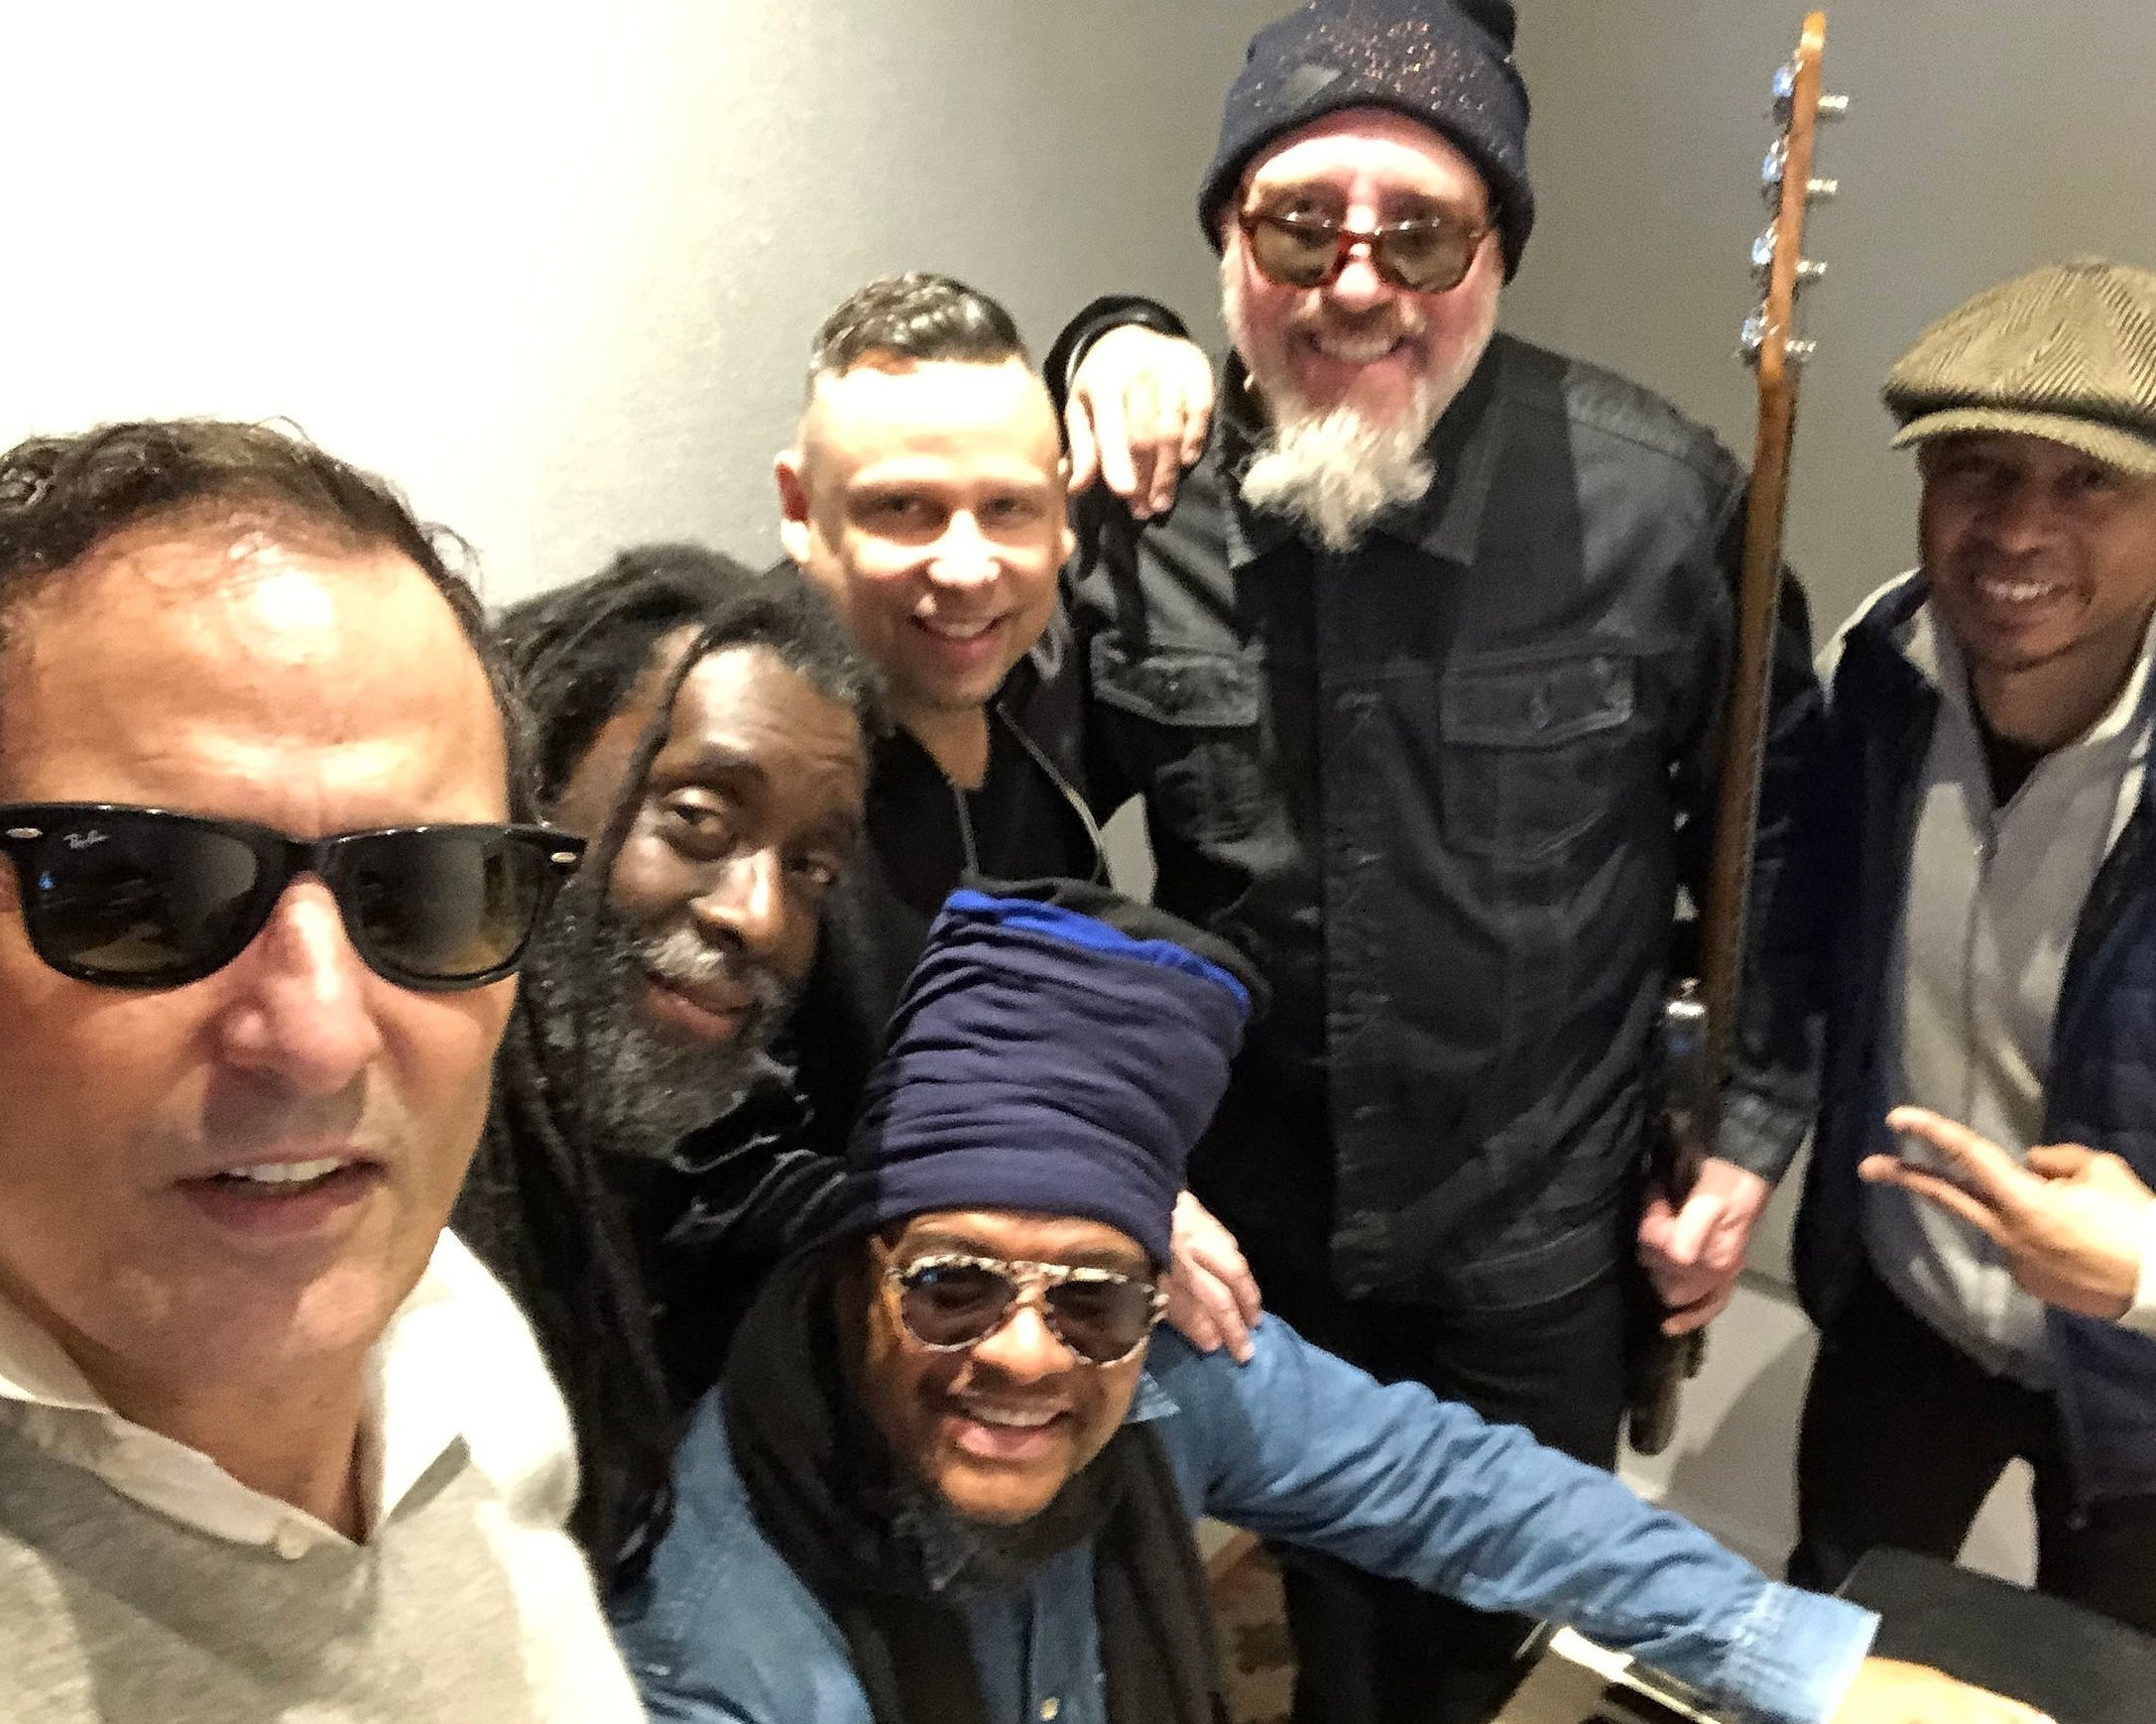 L-R: Zé Luis, Sidney Mills, Maxi Priest, JJ Sansaverino, Paul Nowinski and Eric Brow at The Atelier Music Studio.